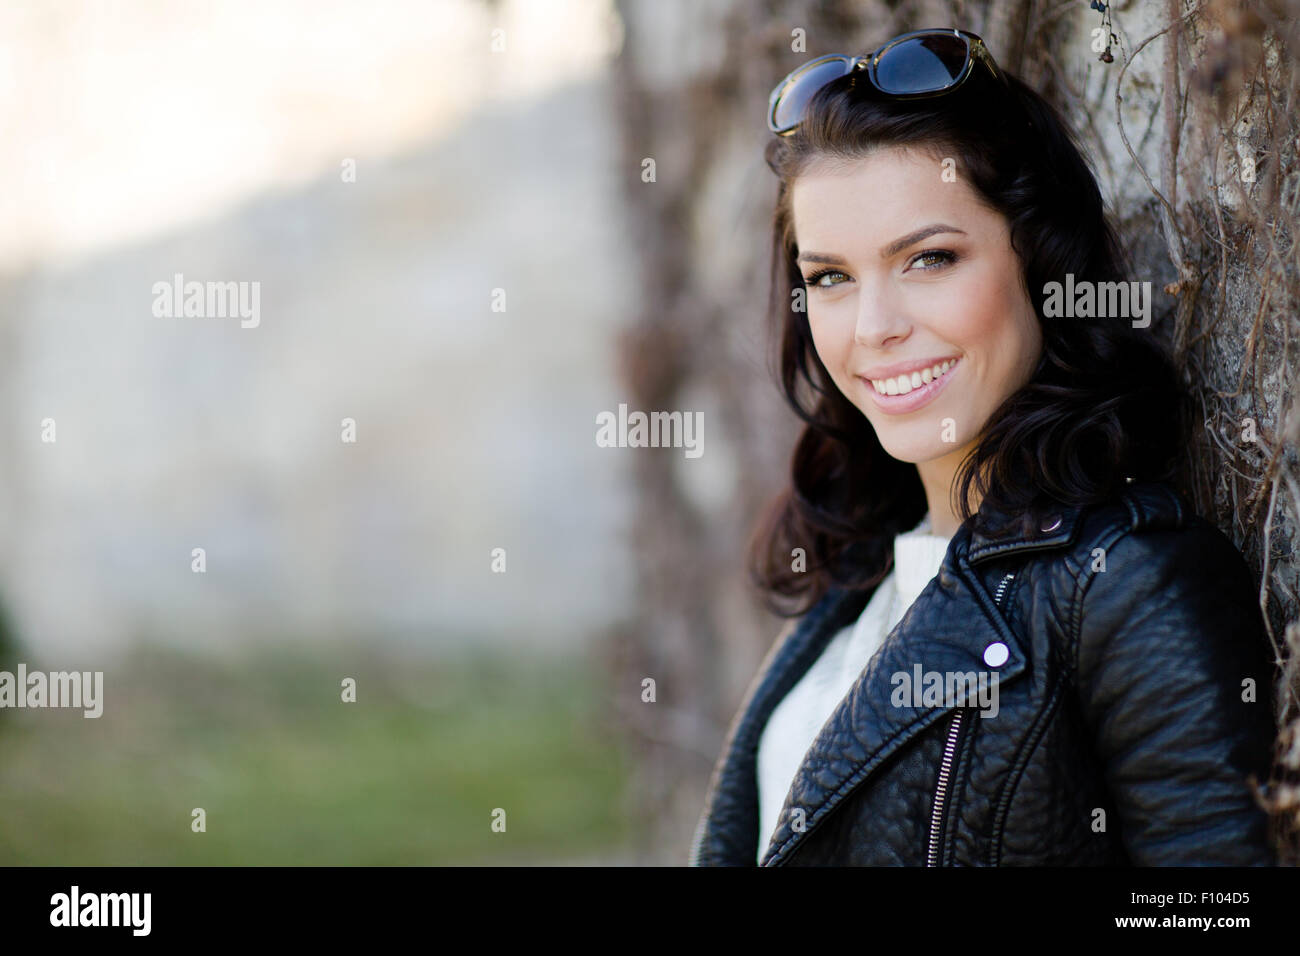 Portrait of a smiling, beautiful young woman leaning against a wall - Stock Image